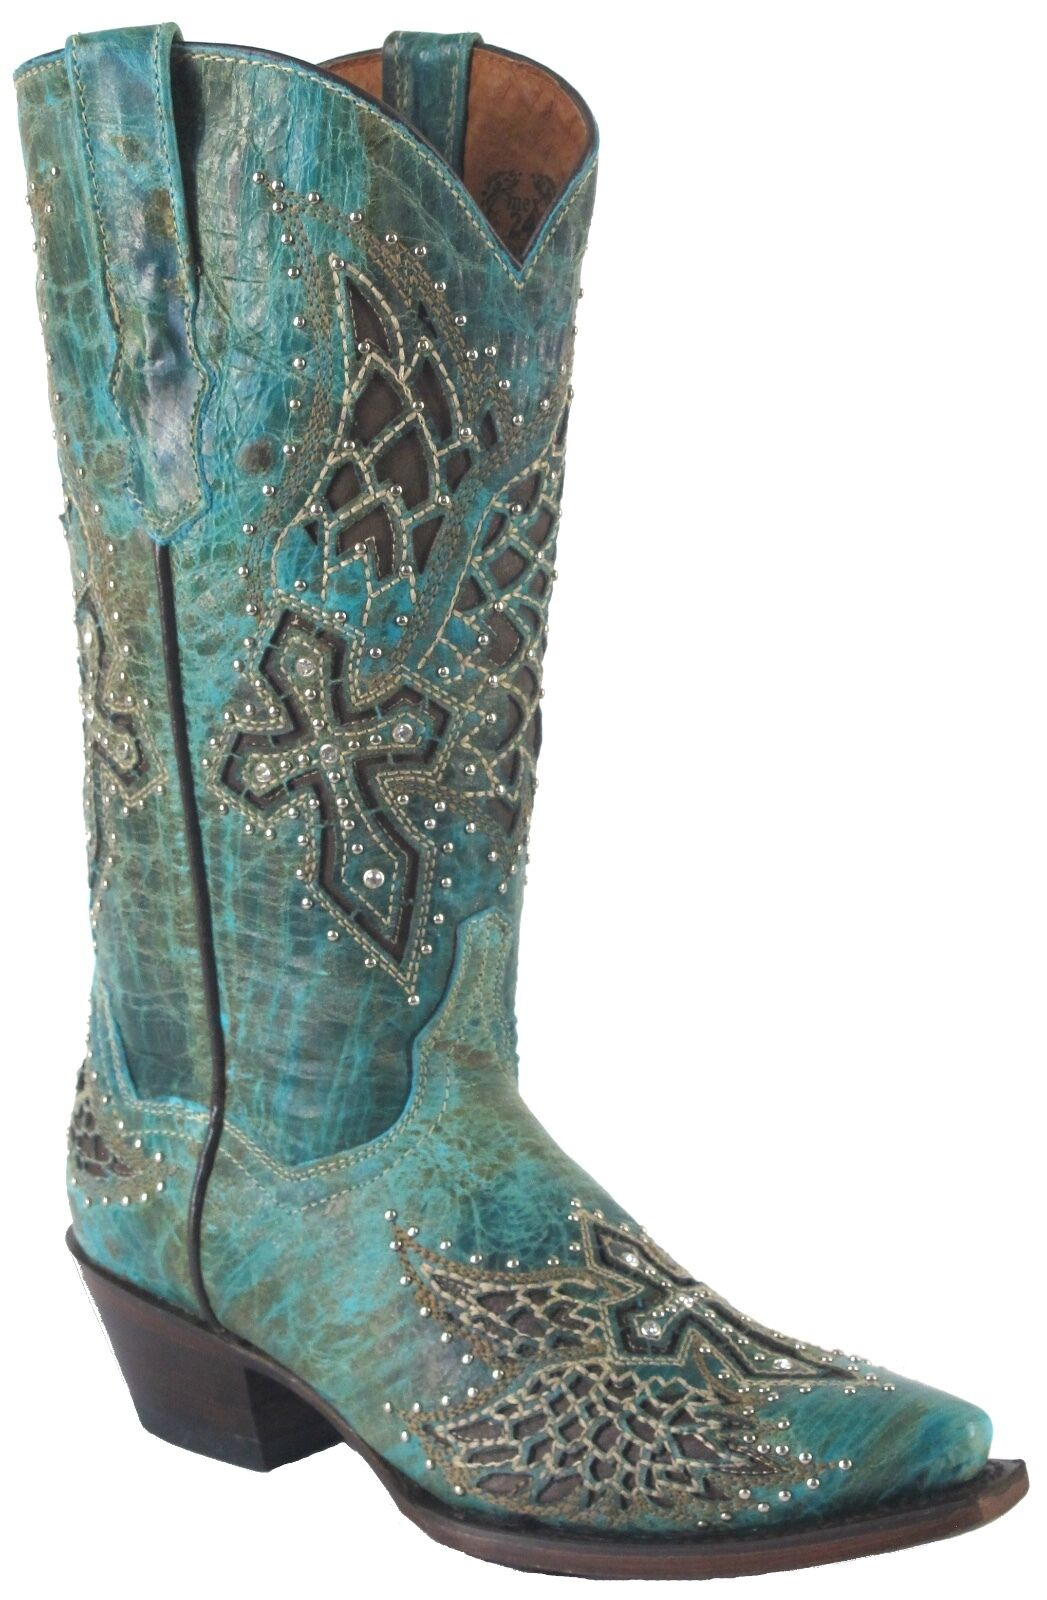 Women's Wings Cross Stud Distressed Leather Leather Leather Cowgirl Western Boots Snip Turquoise 12bc45